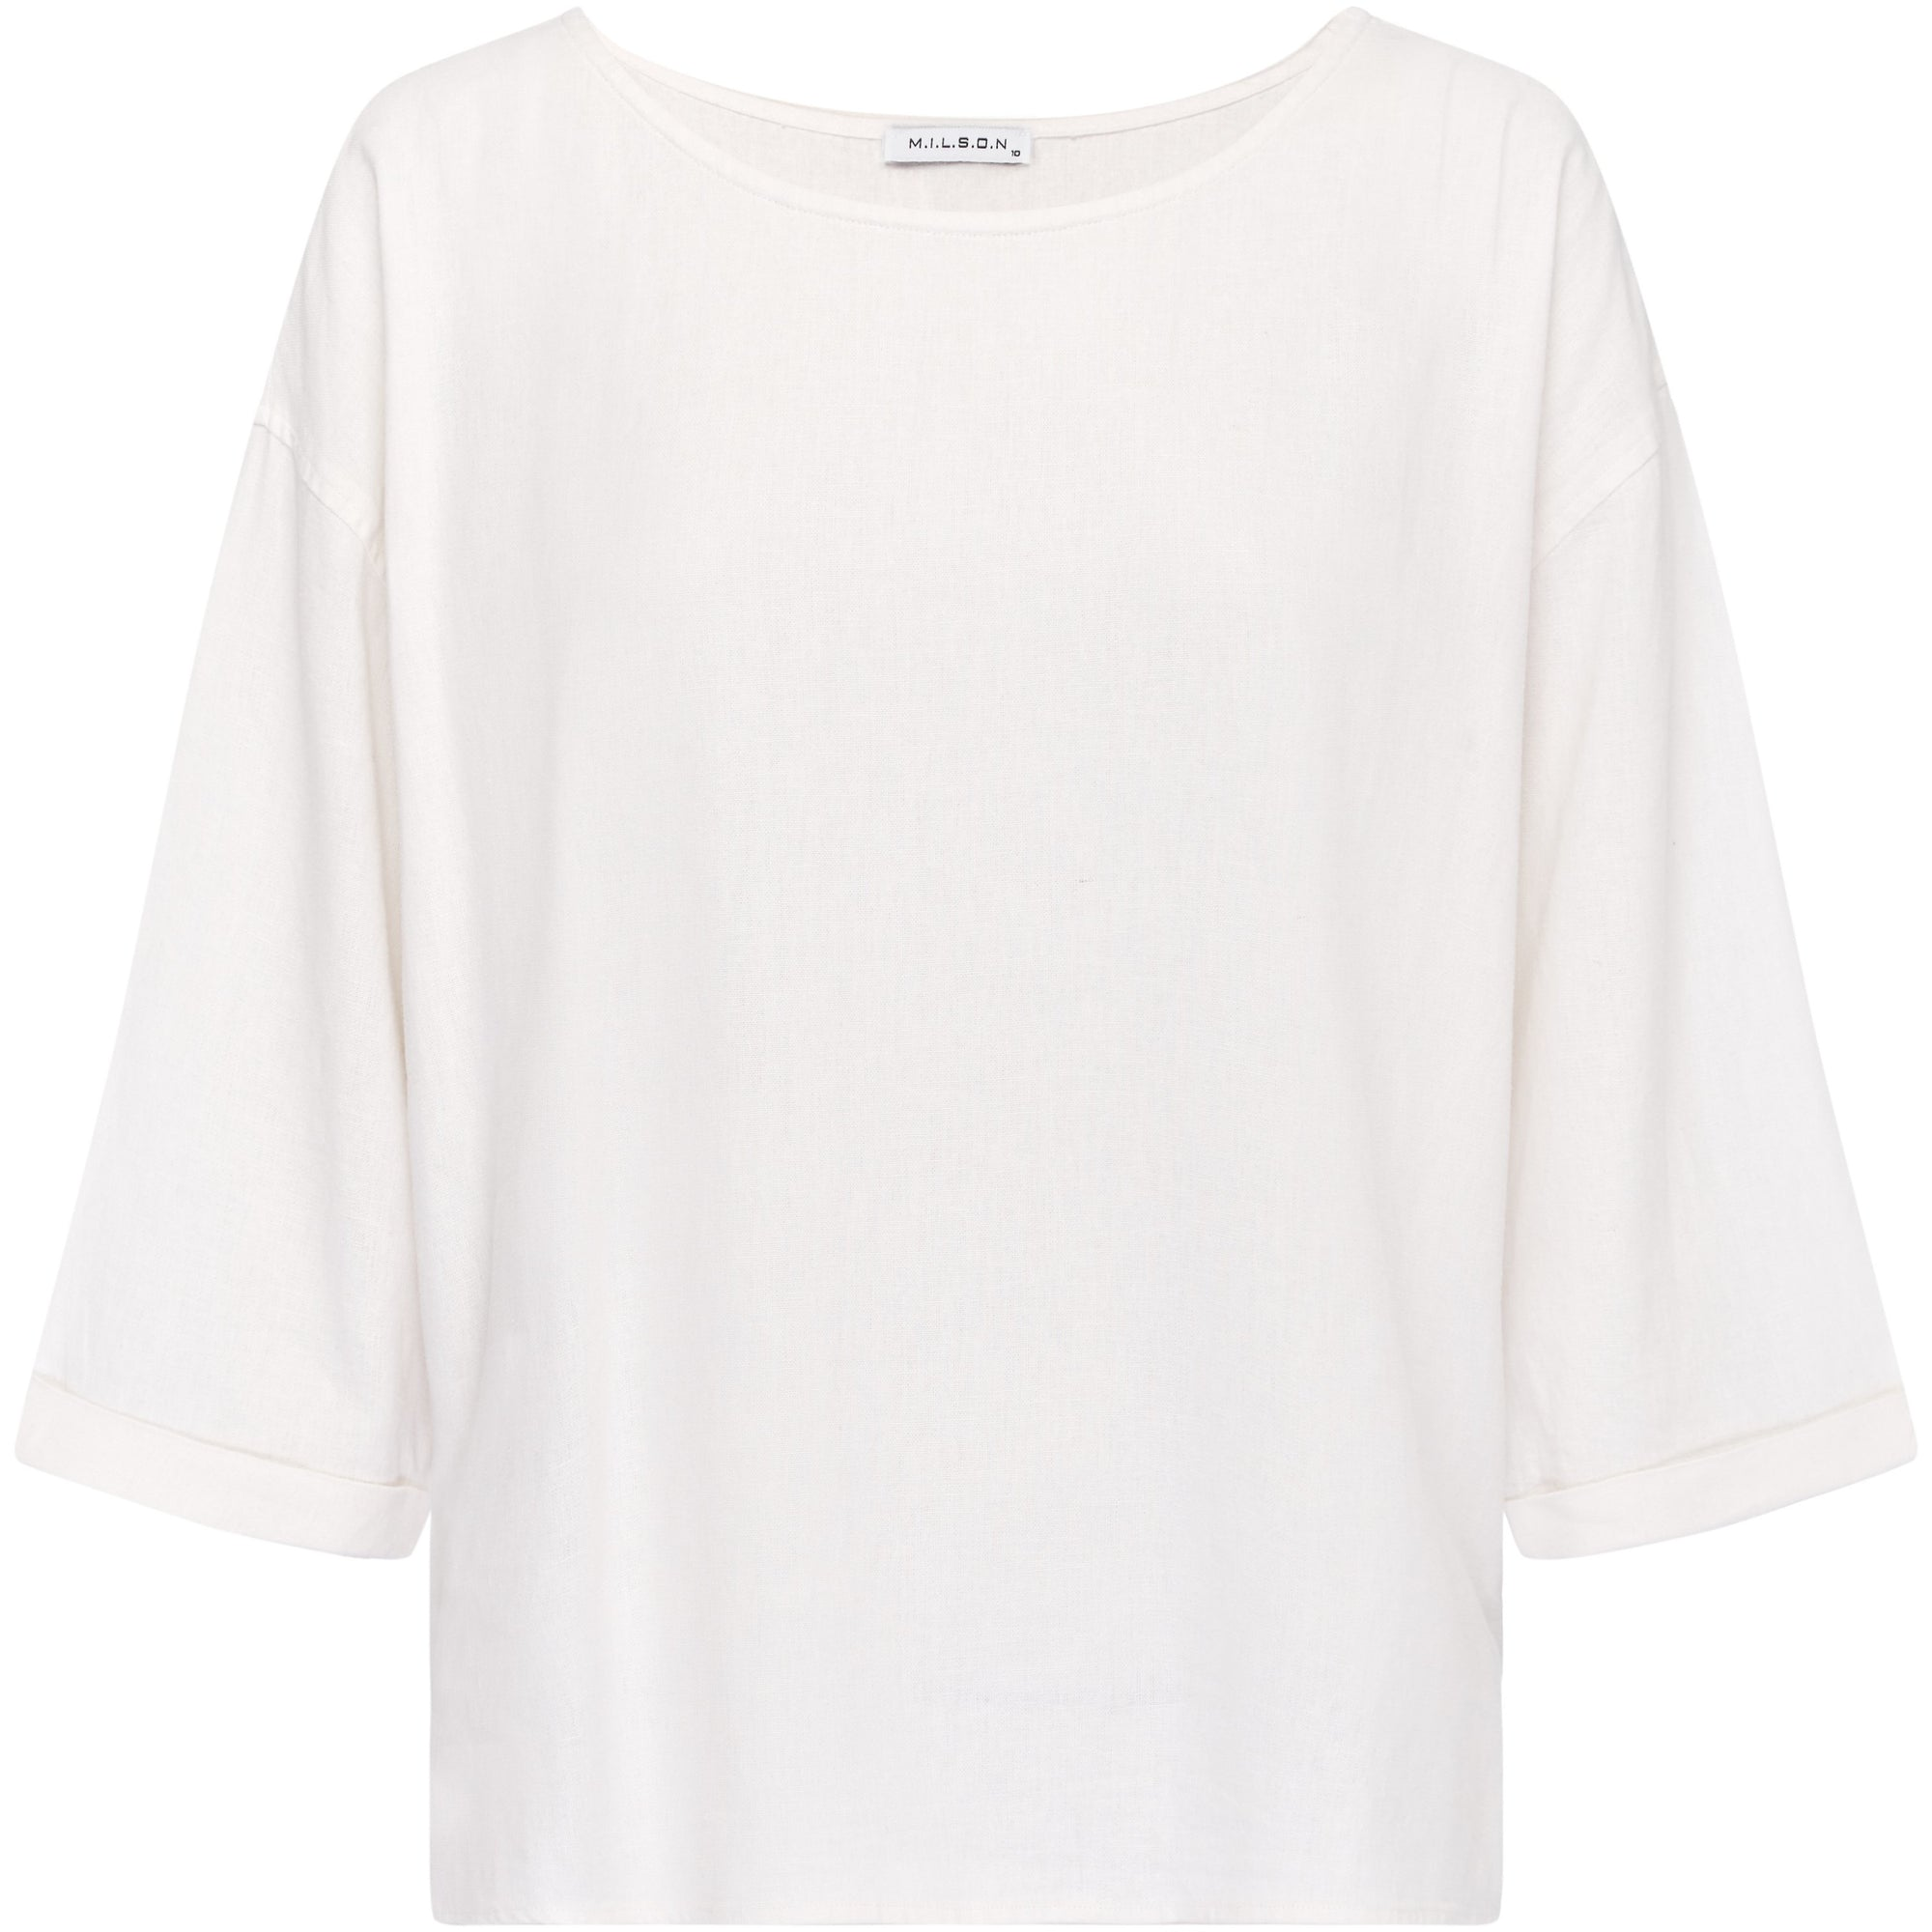 M.I.L.S.O.N Layla Linen Top in White